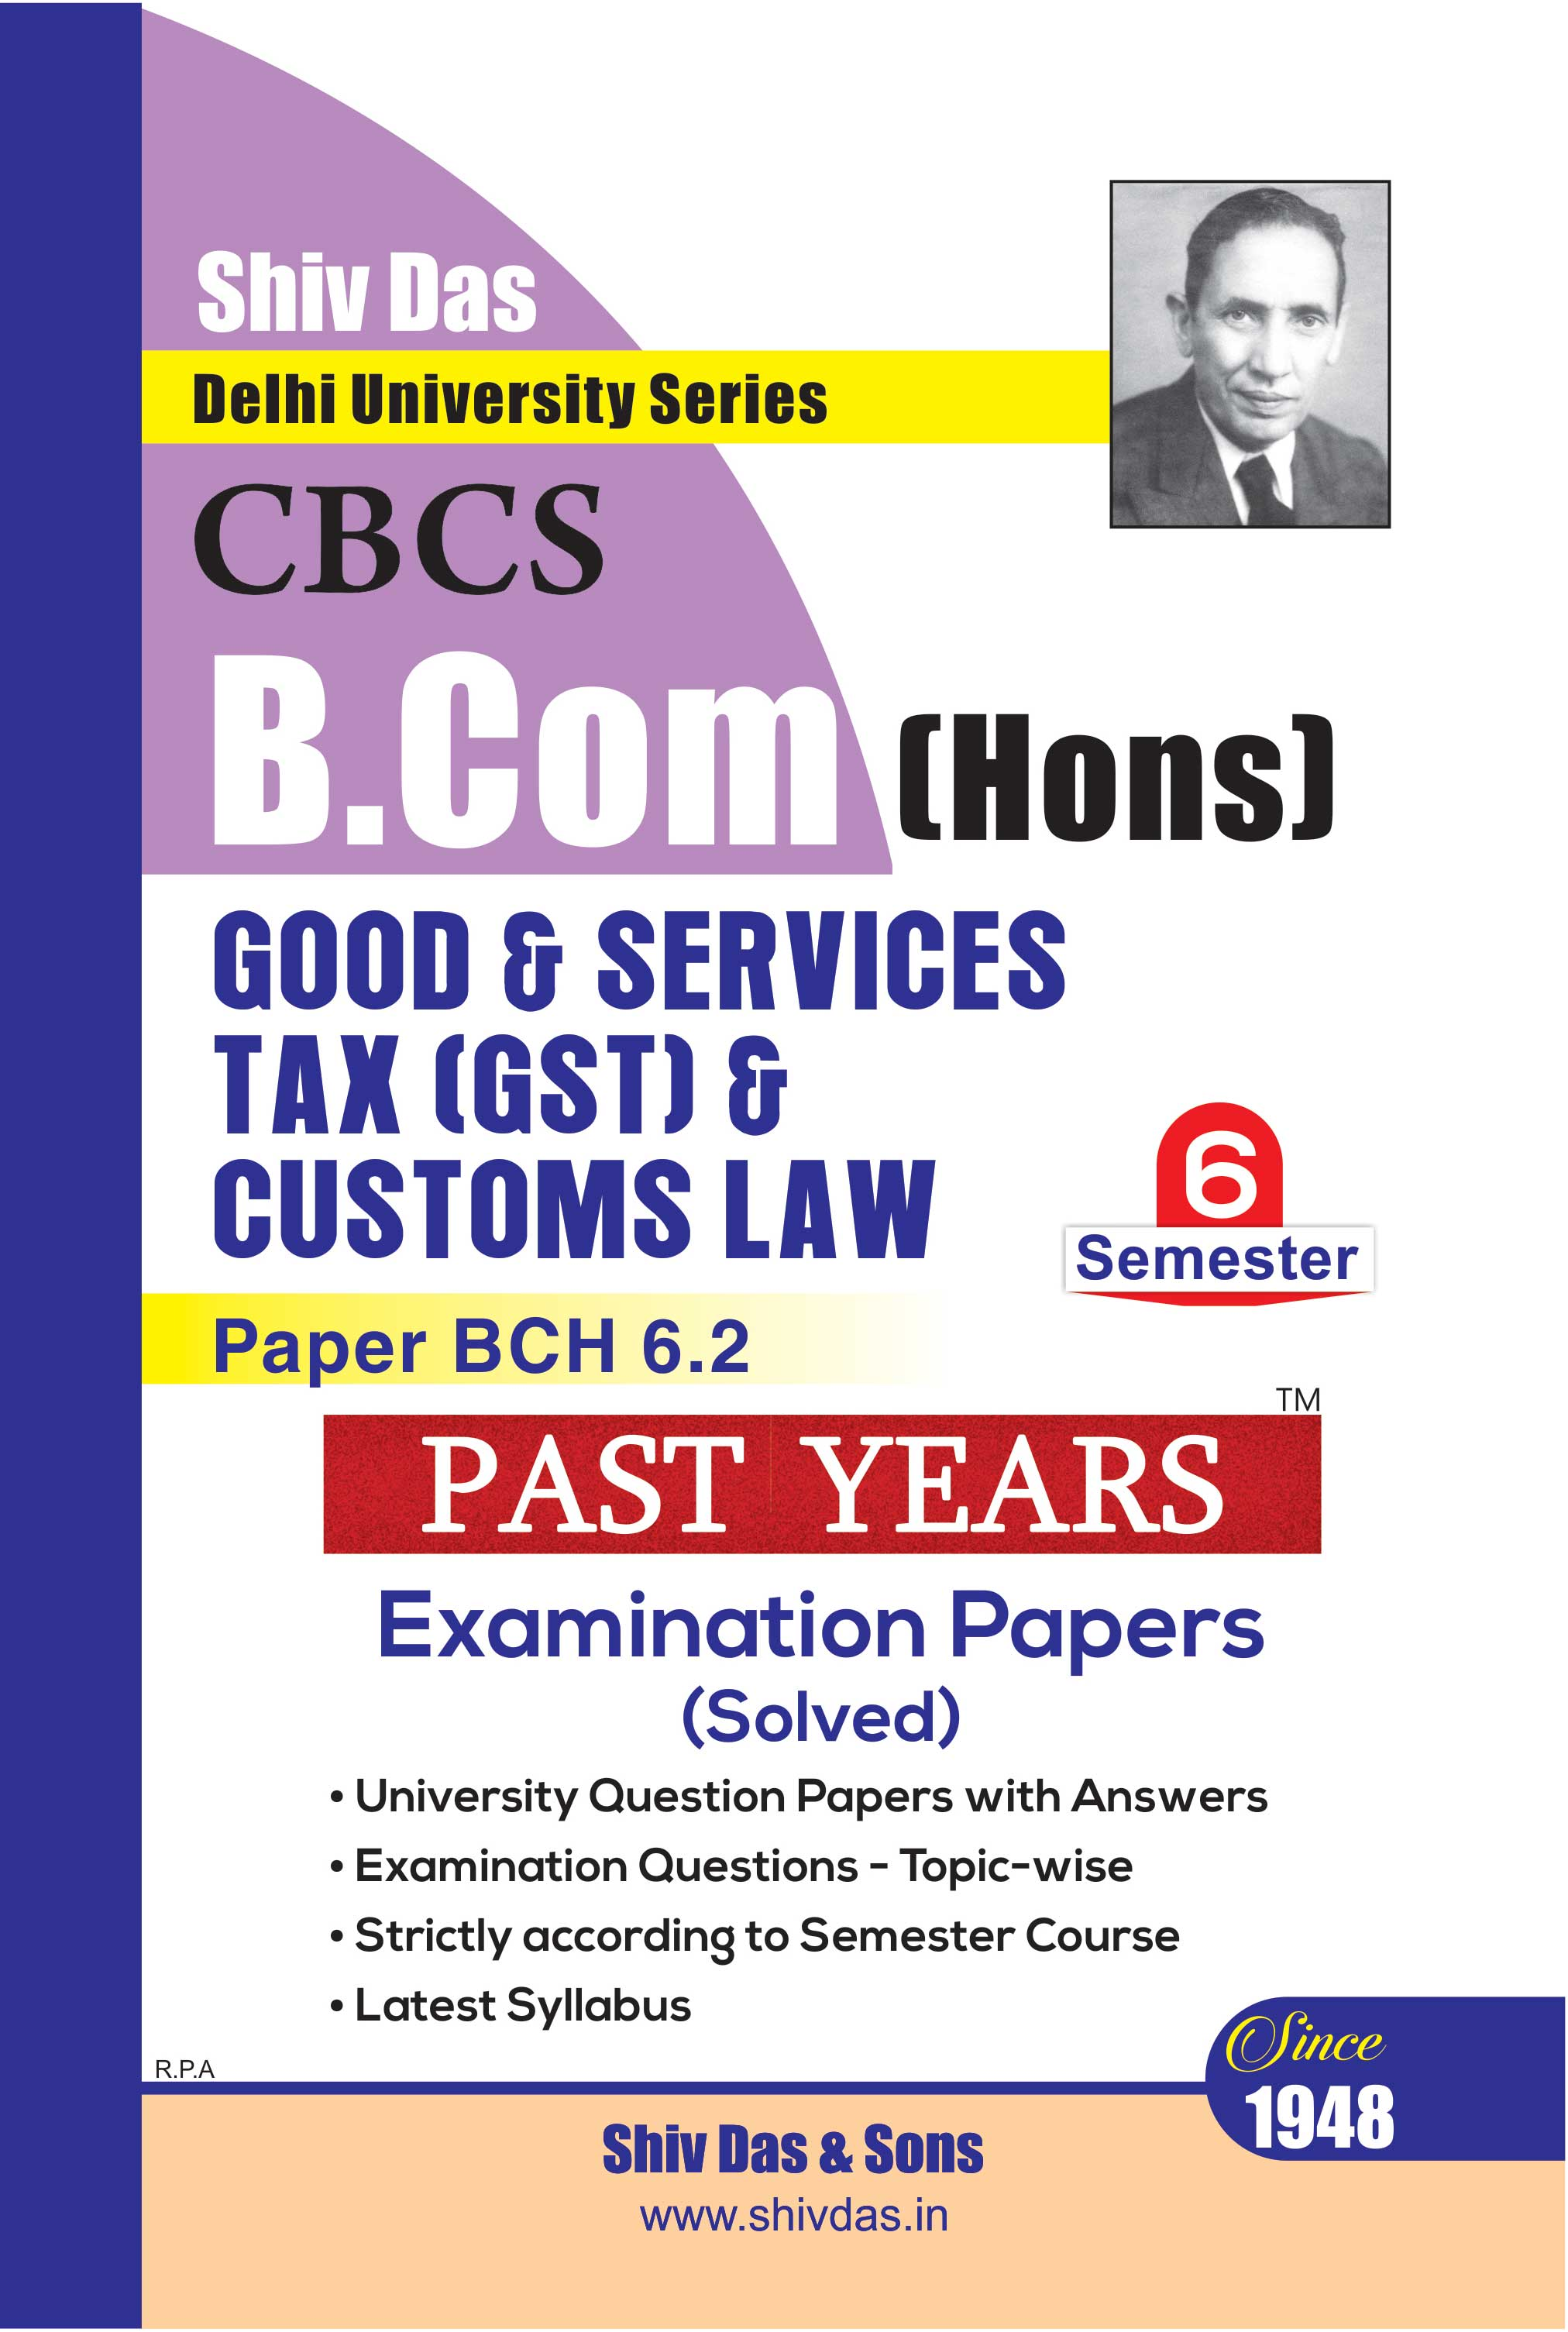 Good & Services Tax (GST) & Customs Law for B.Com Hons  Semester 6 for Delhi University by Shiv Das